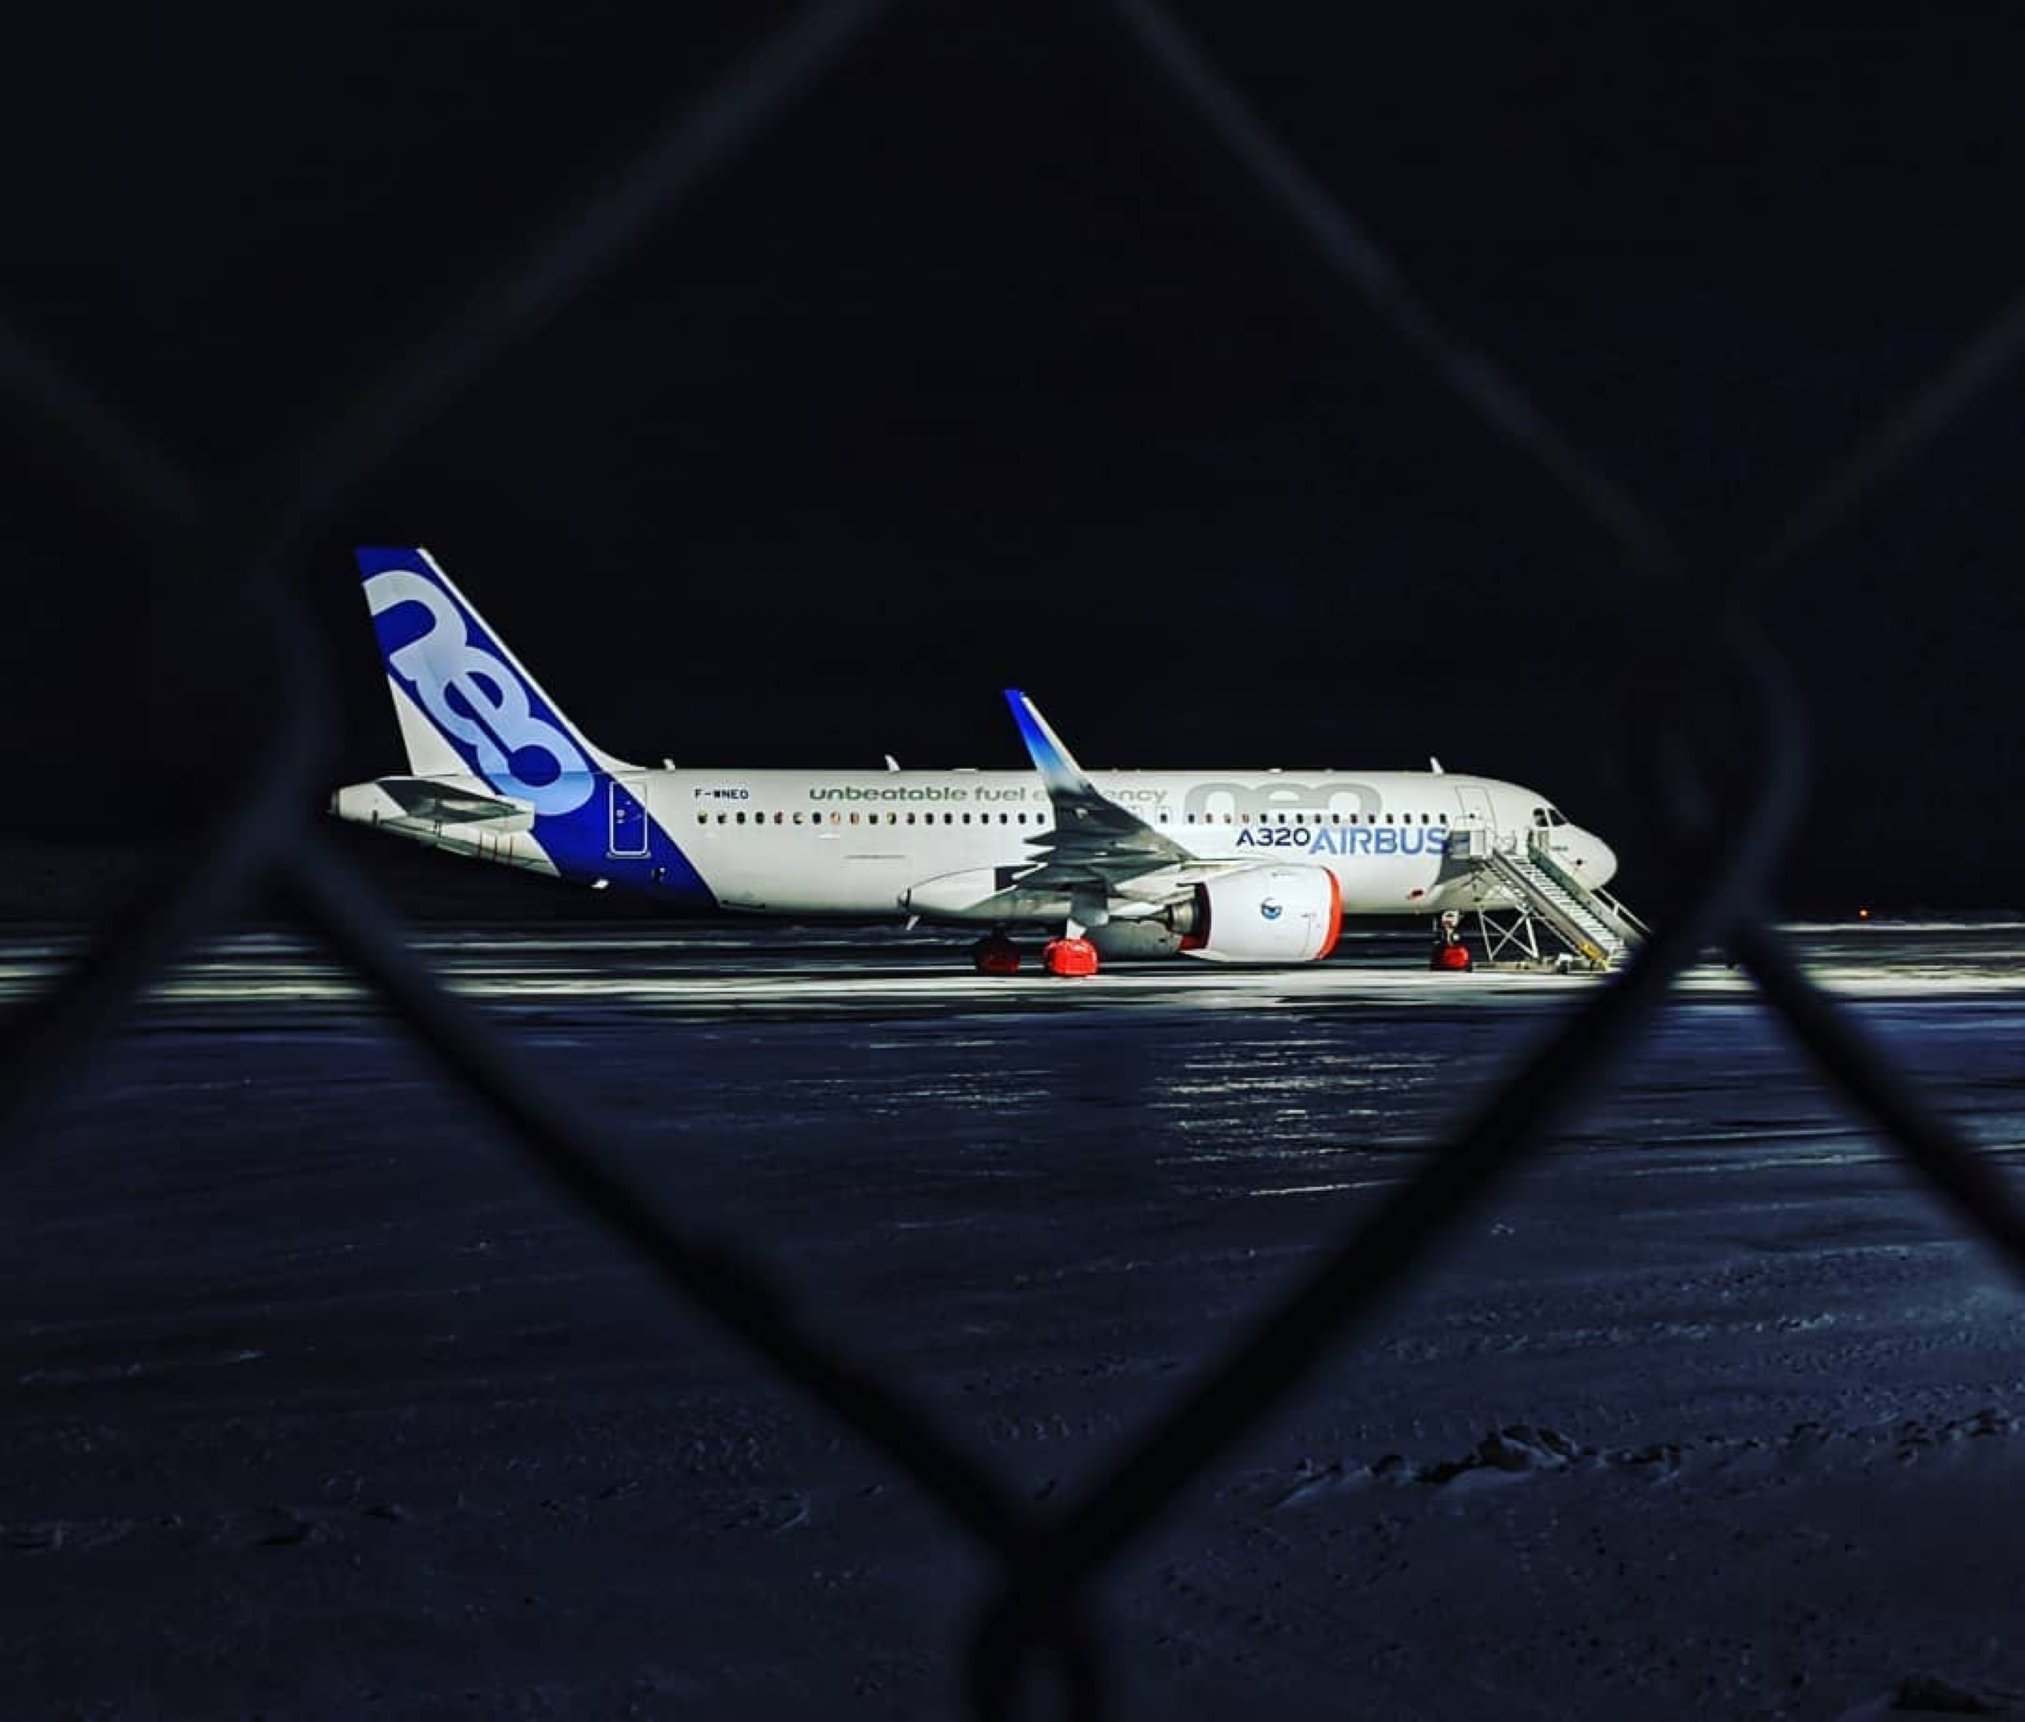 Airbus A320neo in Iqaluit for cold weather testing. Photo submitted by Colin Gibson (Instagram user @colin.gibson1984) using #skiesmag